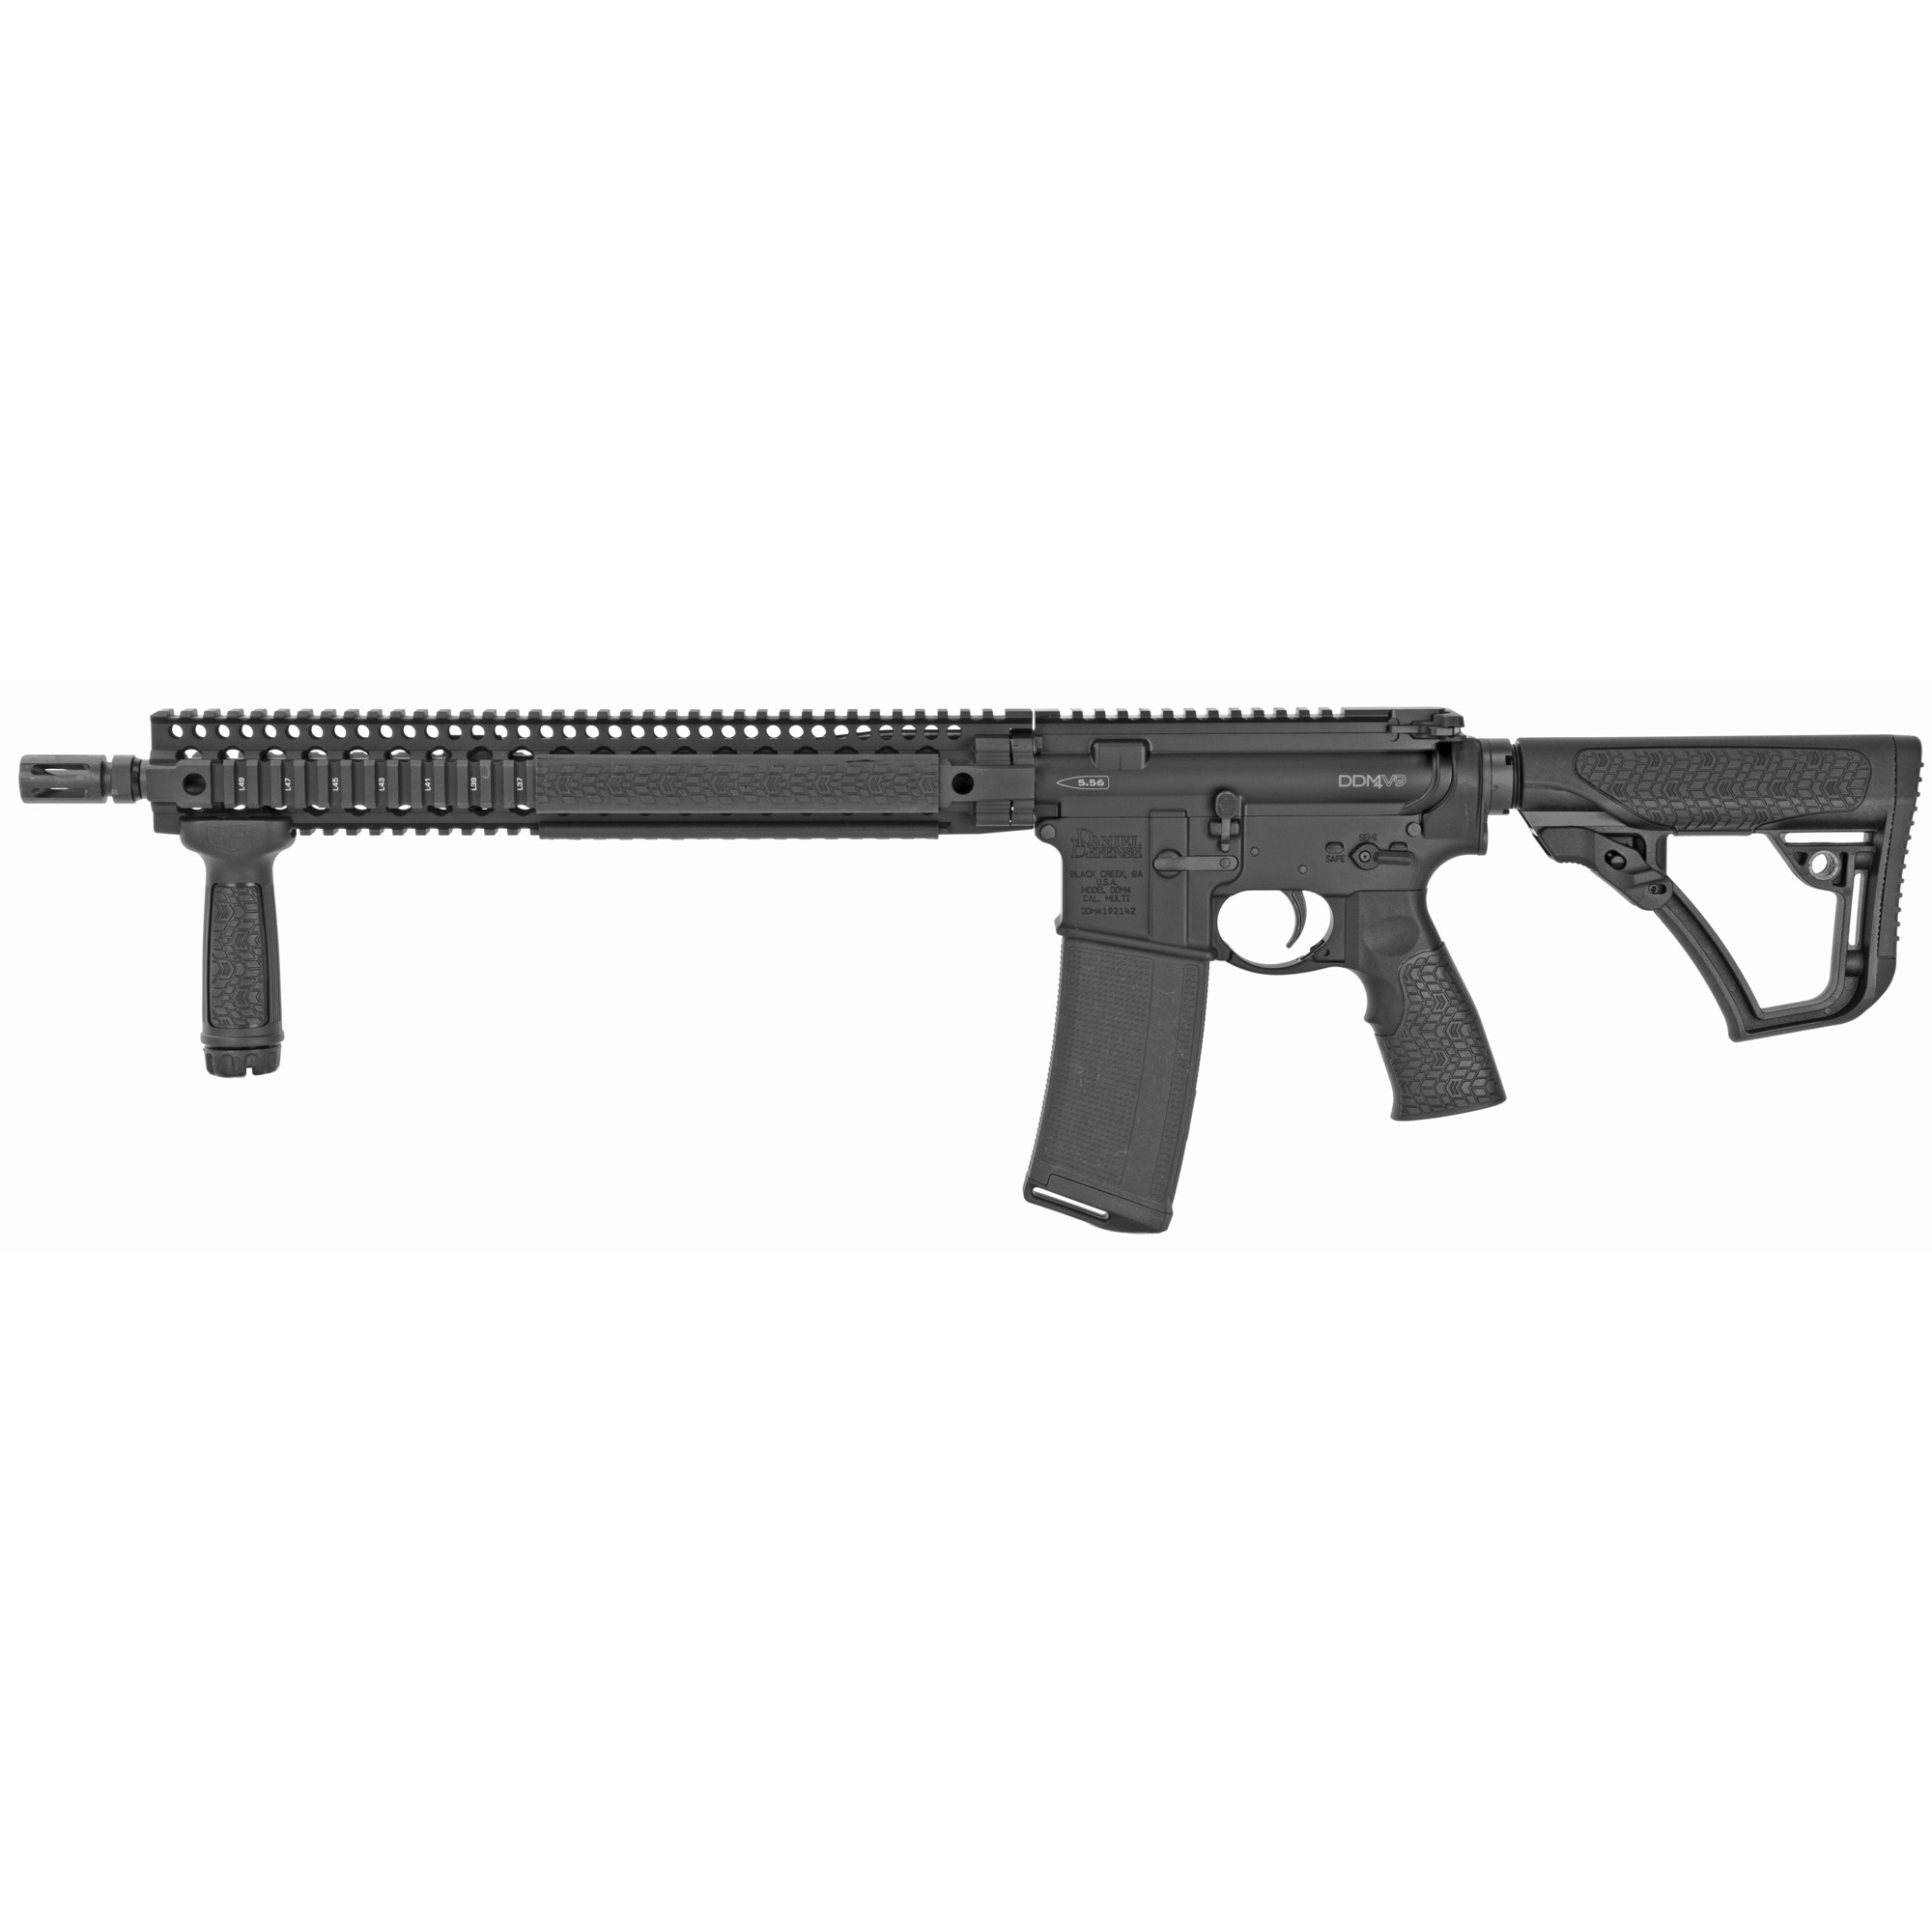 "The new Daniel Defense DDM4V9 is designed to satisfy the needs of modern shooters not only in popular shooting sports but also for tactical and defensive applications. The long"" 15"" DDM4 quad rail over a 16"" cold hammer forged Government profile barrel gives the operator the option to have the support hand extended out close to the muzzle allowing them to drive the gun more precisely"" and preventing over travel when transitioning between multiple targets."